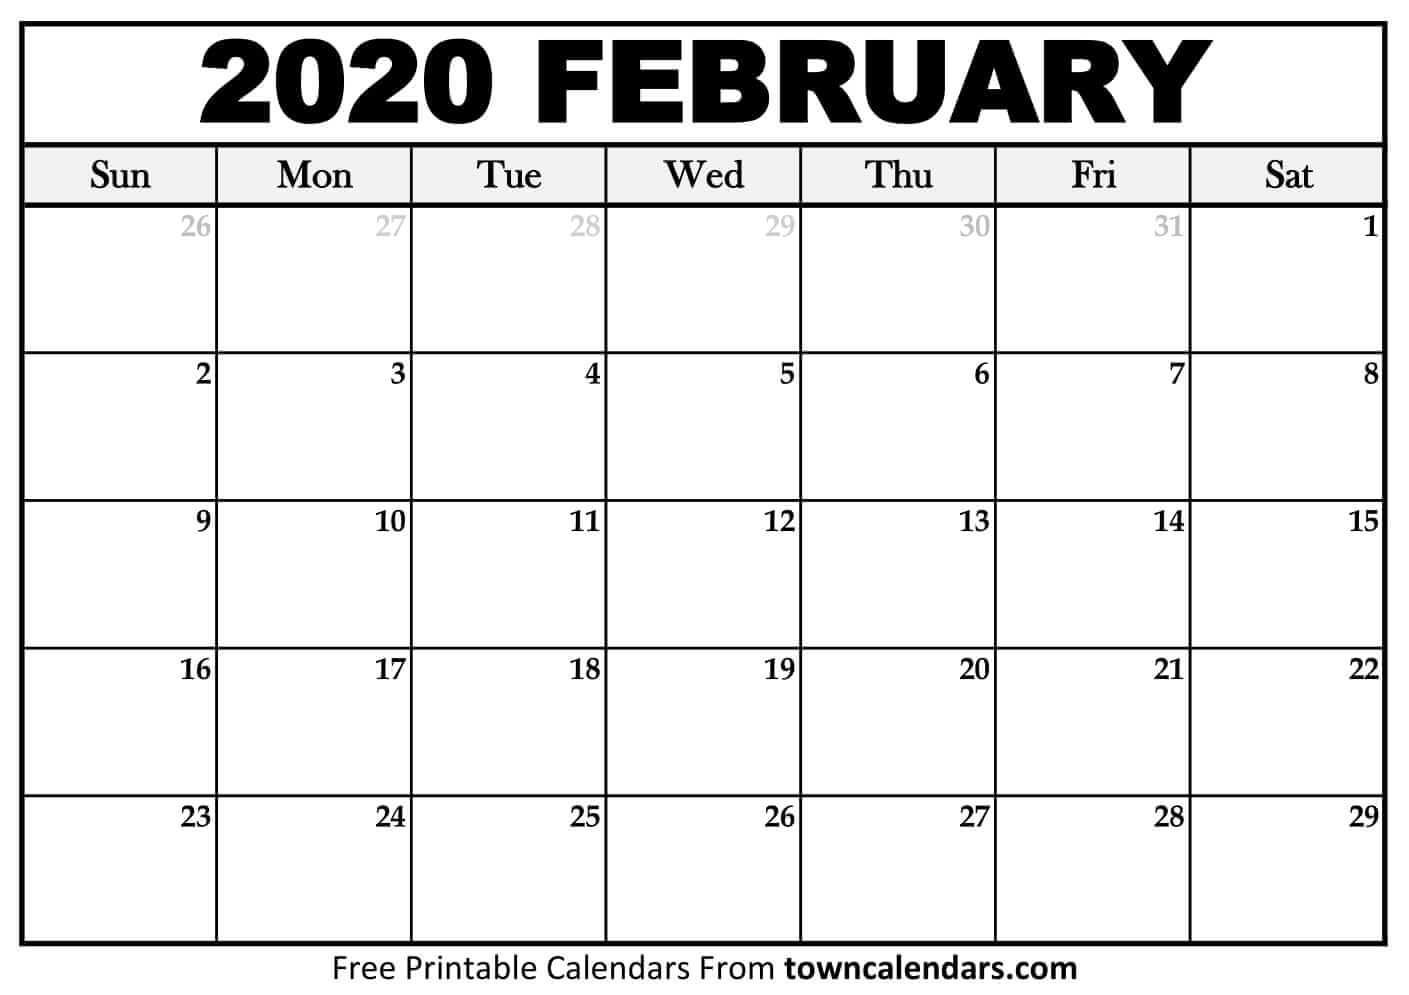 Printable February 2020 Calendar – Towncalendars – Printable for Vertex 2020 Calendars Monday Through Sunday